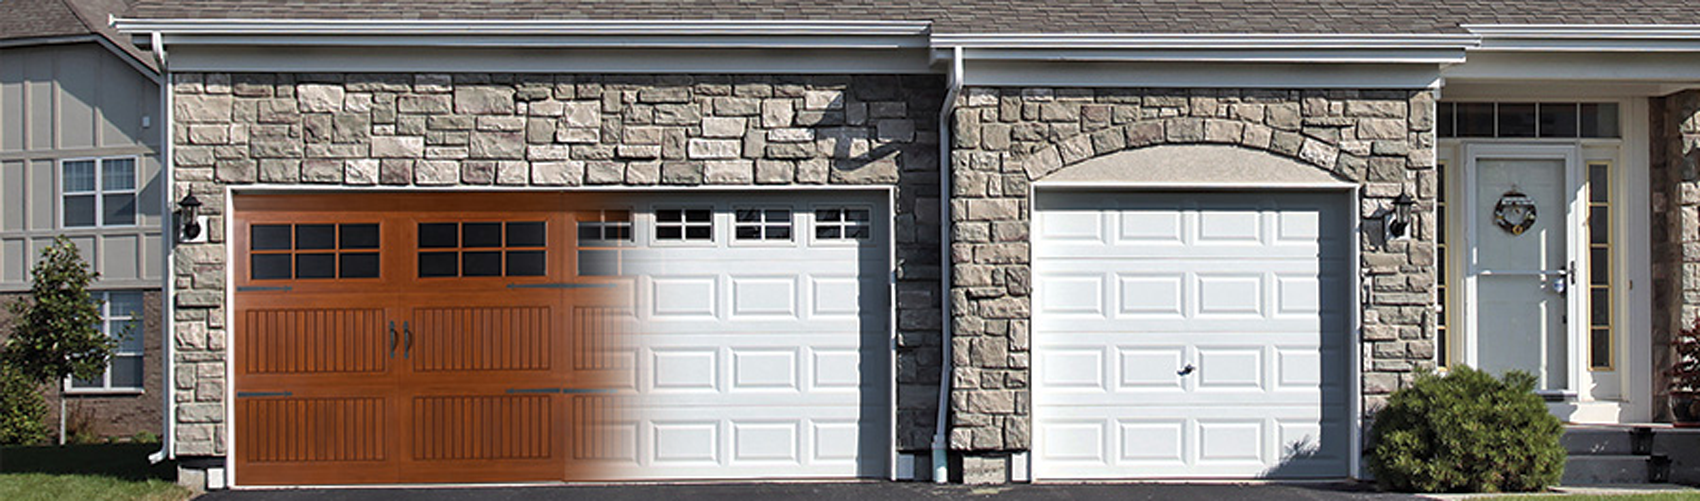 overhead door garage doors company